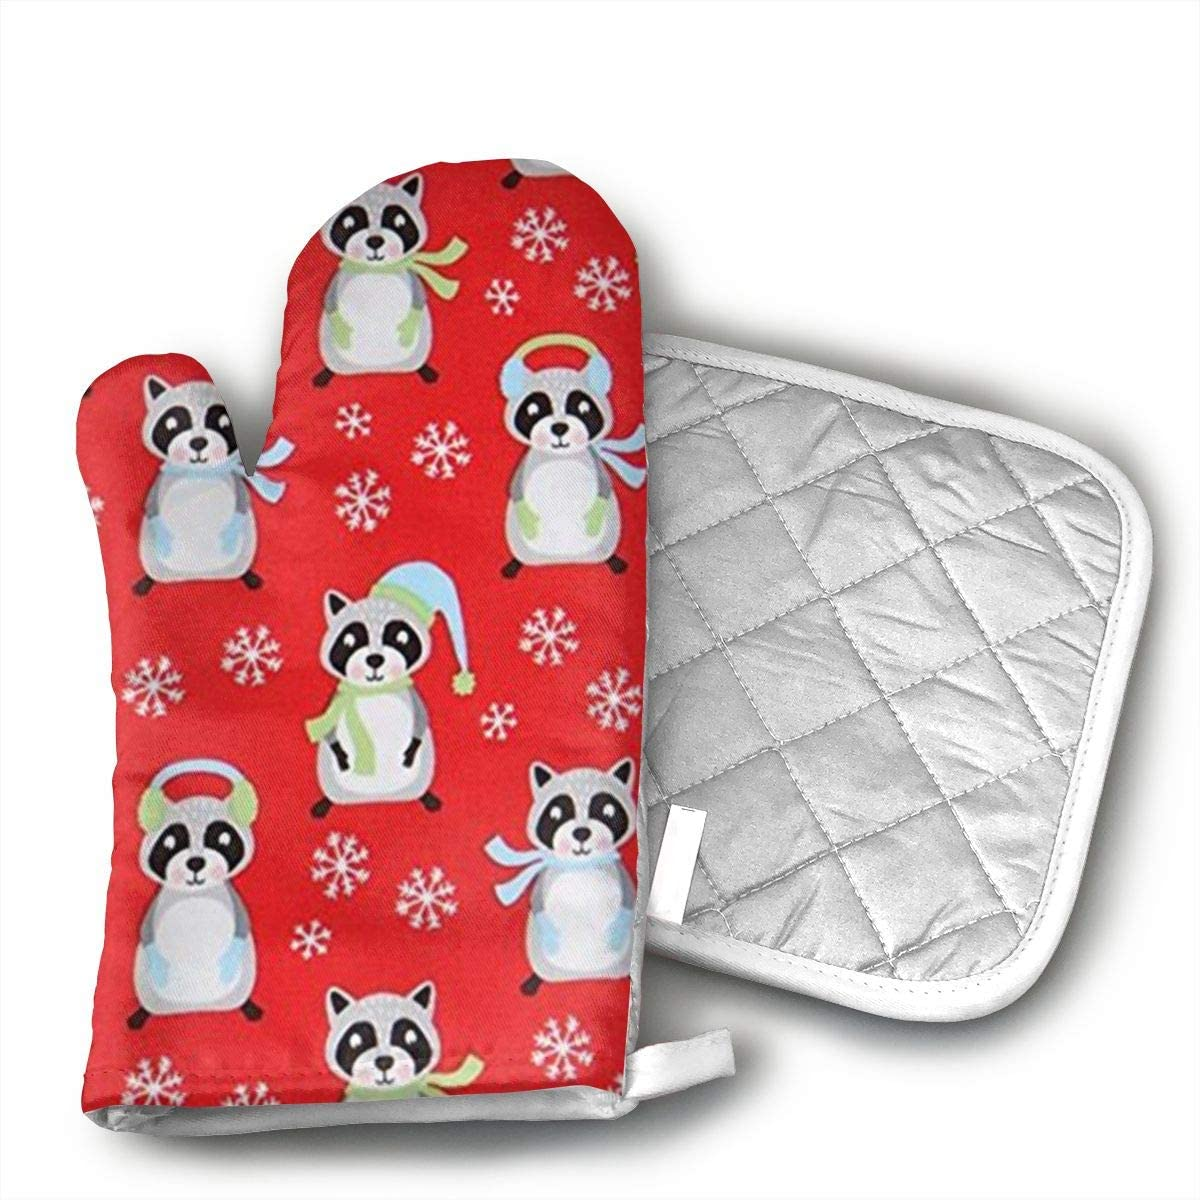 antcreptson Red Raccoon Snowflake Christmas Traditional Oven Mitts Insulation Gloves and Pot Holder Set Heat Resistant Gloves Kitchen Cooking for Barbeque Microwave Oven with Soft Inner Lining